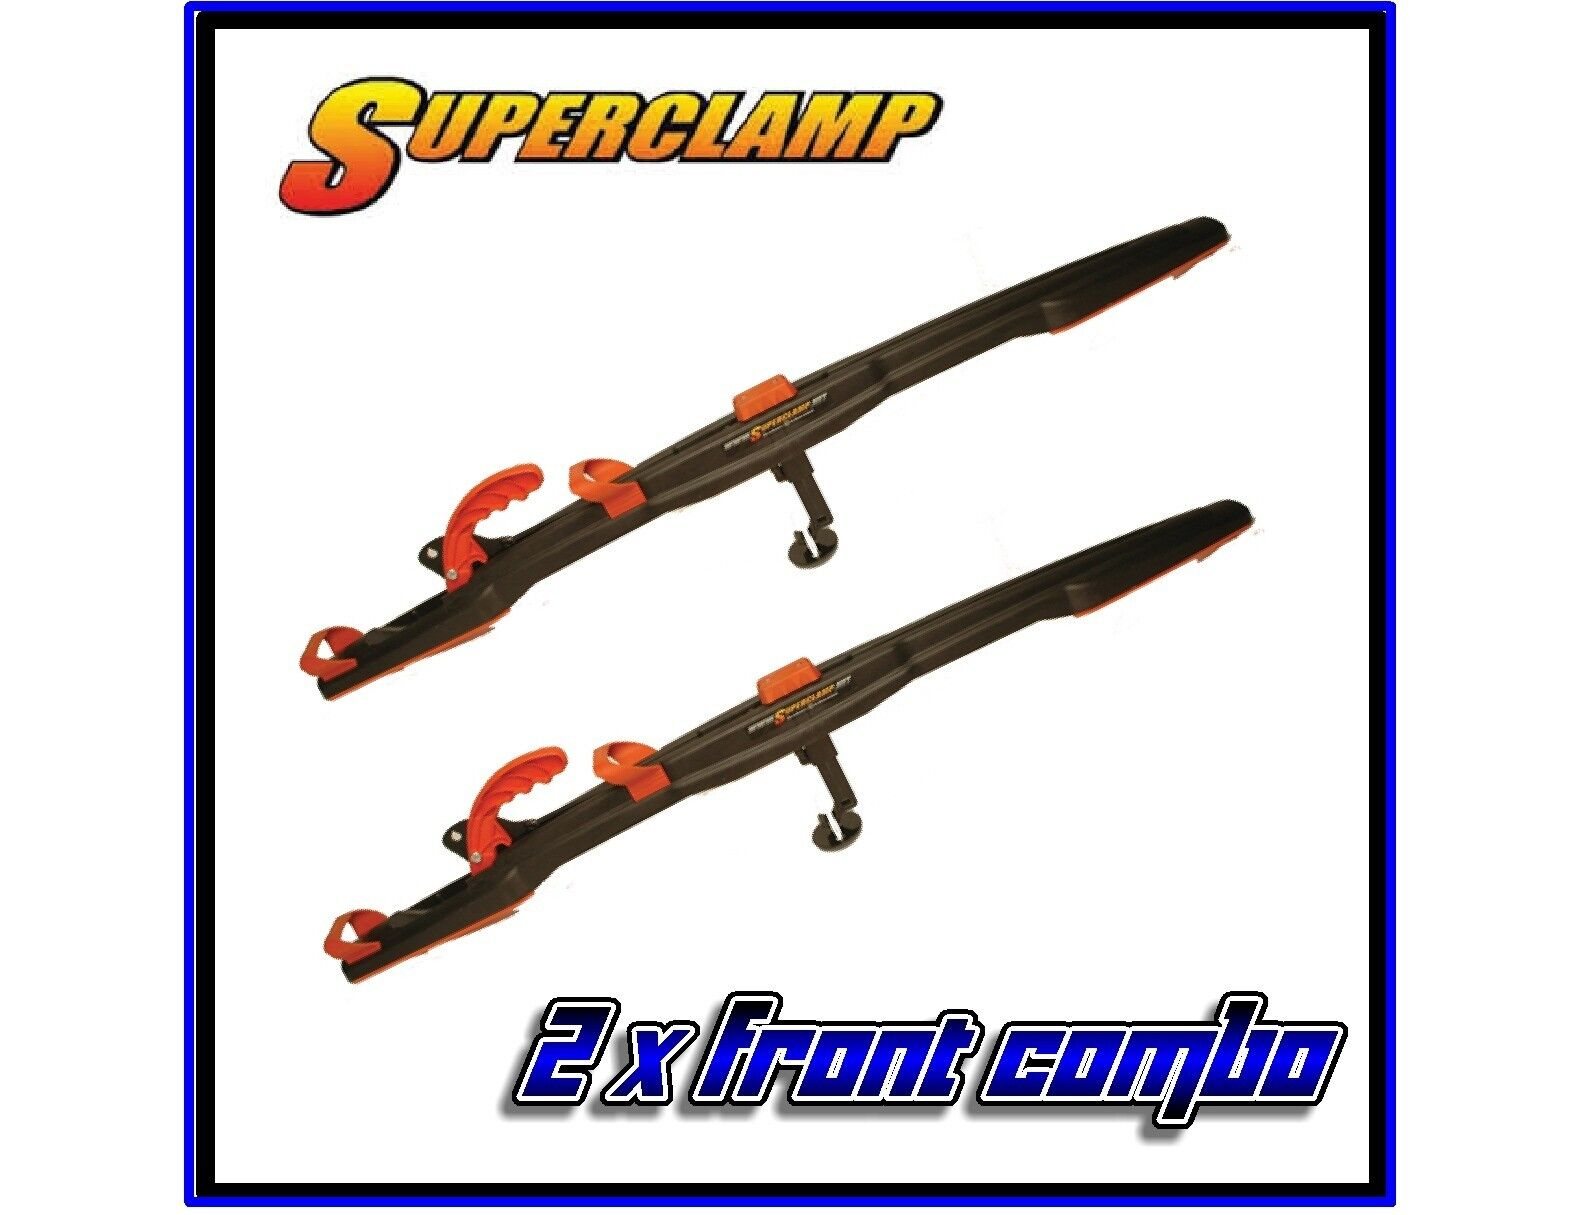 2-Super Clamp II Front Combo Snowmobile Trailer Tie Down System Superclamp